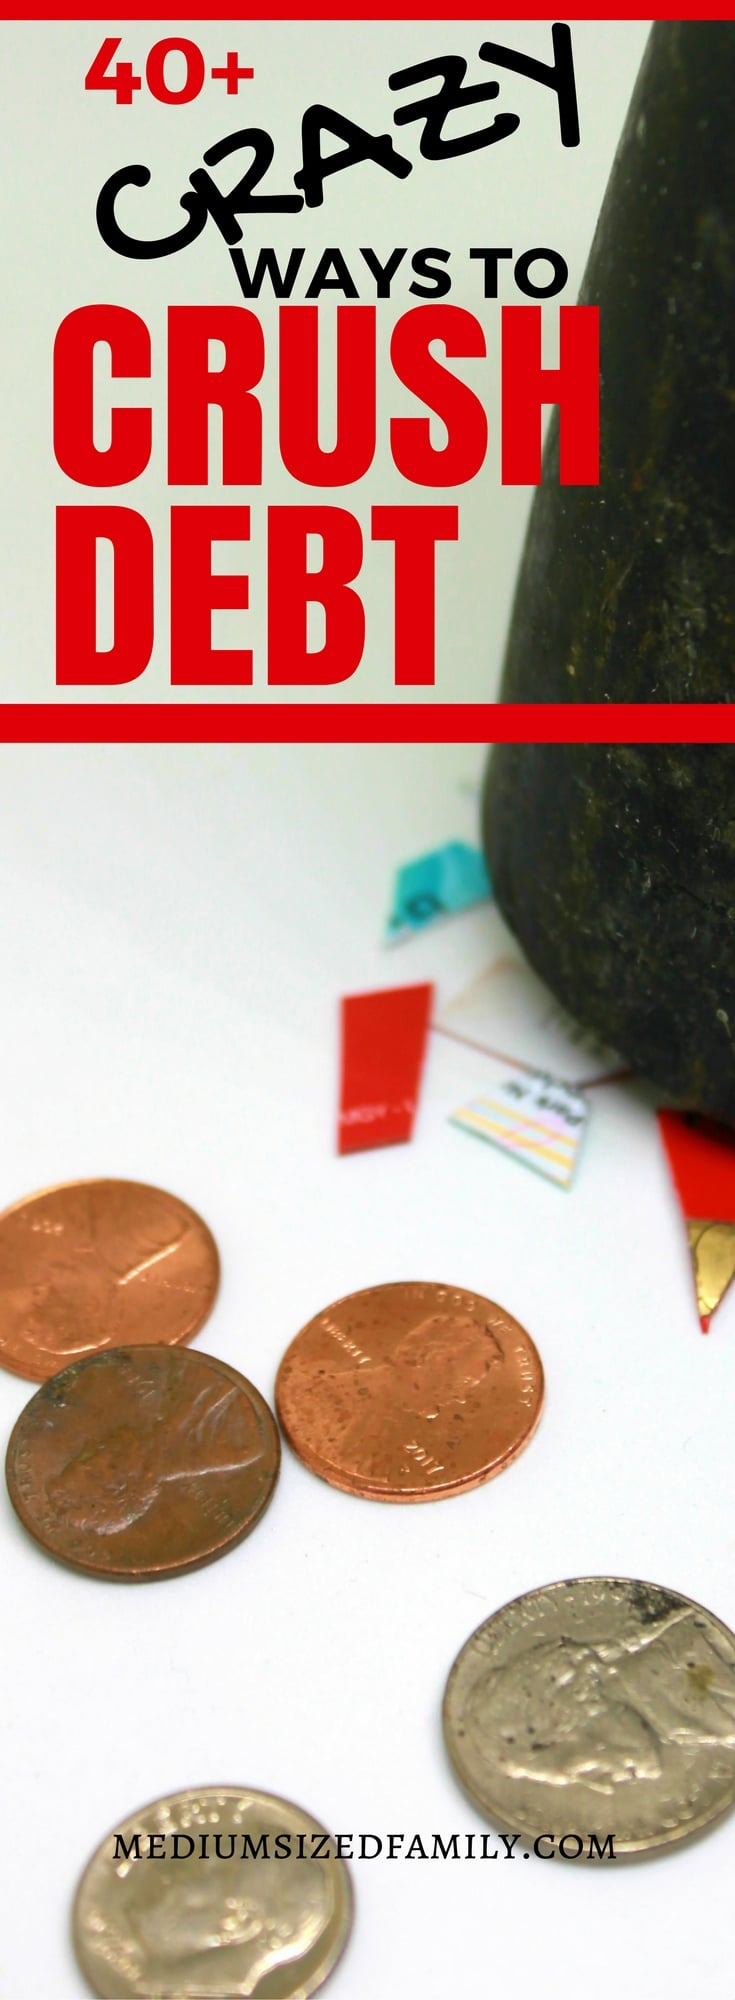 Crazy ideas that will help you get out of debt fast.